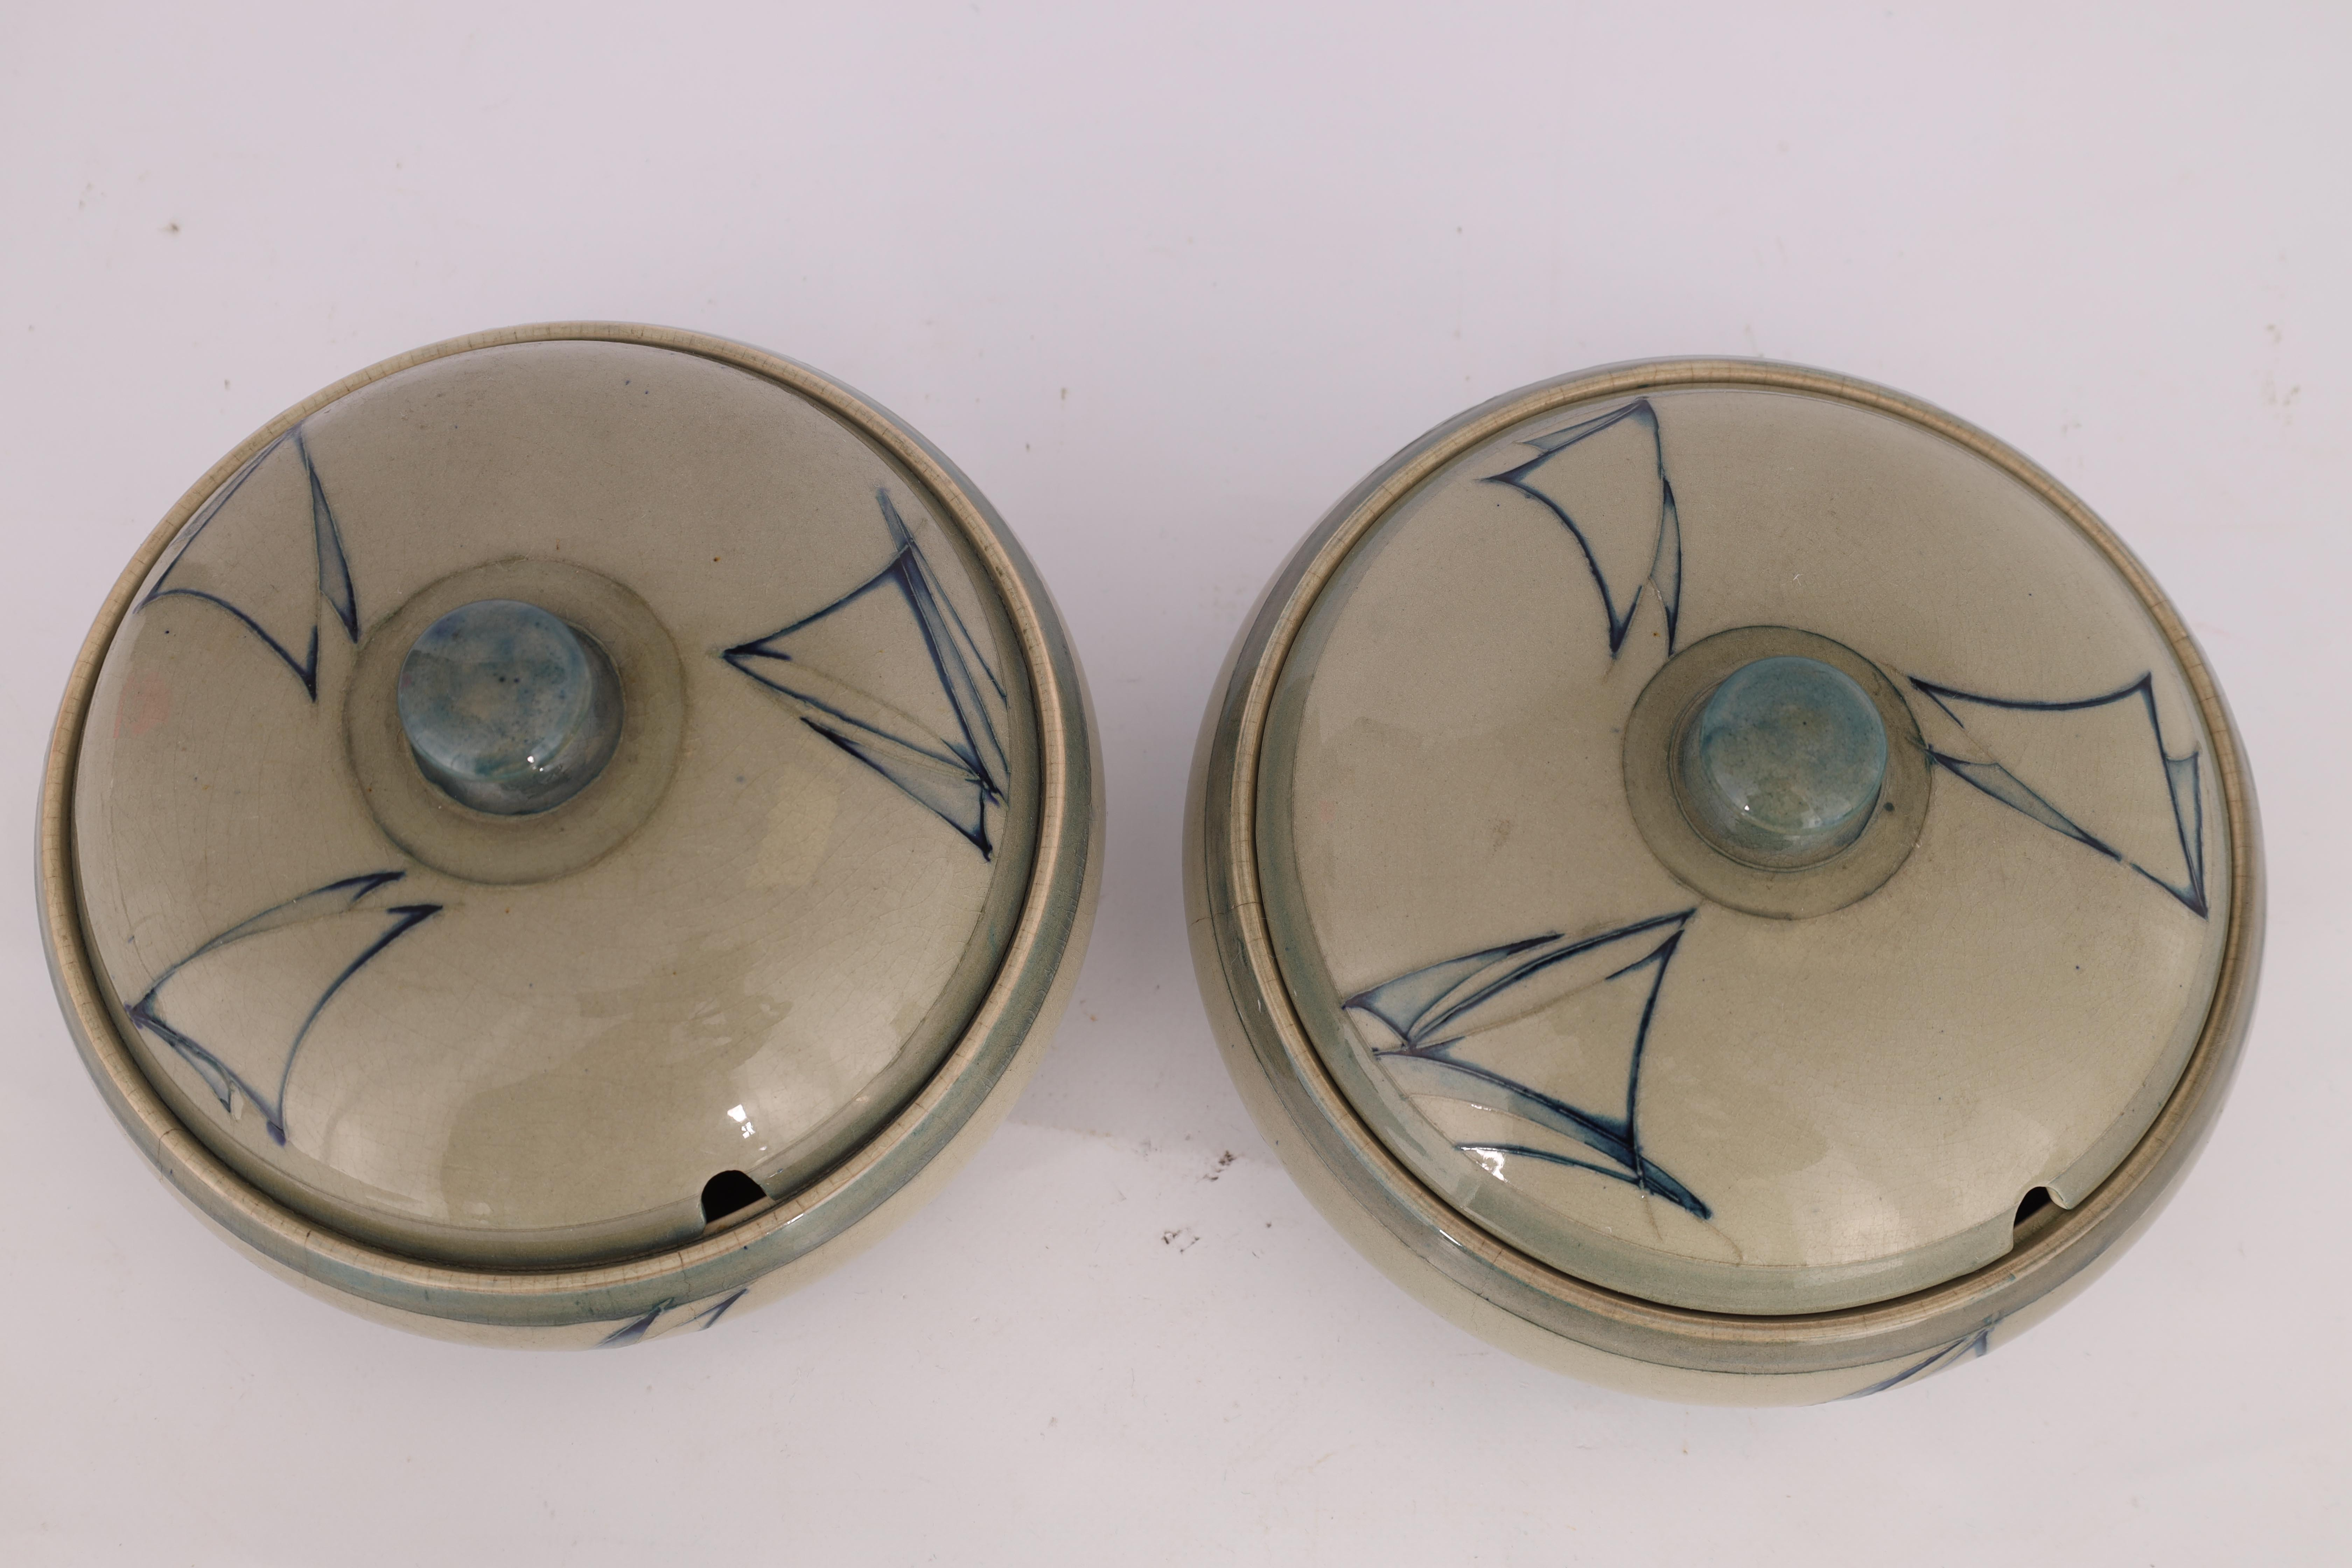 A PAIR OF MOORCROFT LIDDED TABLE TUREENS decorated in the Yacht pattern on a celadon ground, 19. - Image 12 of 12